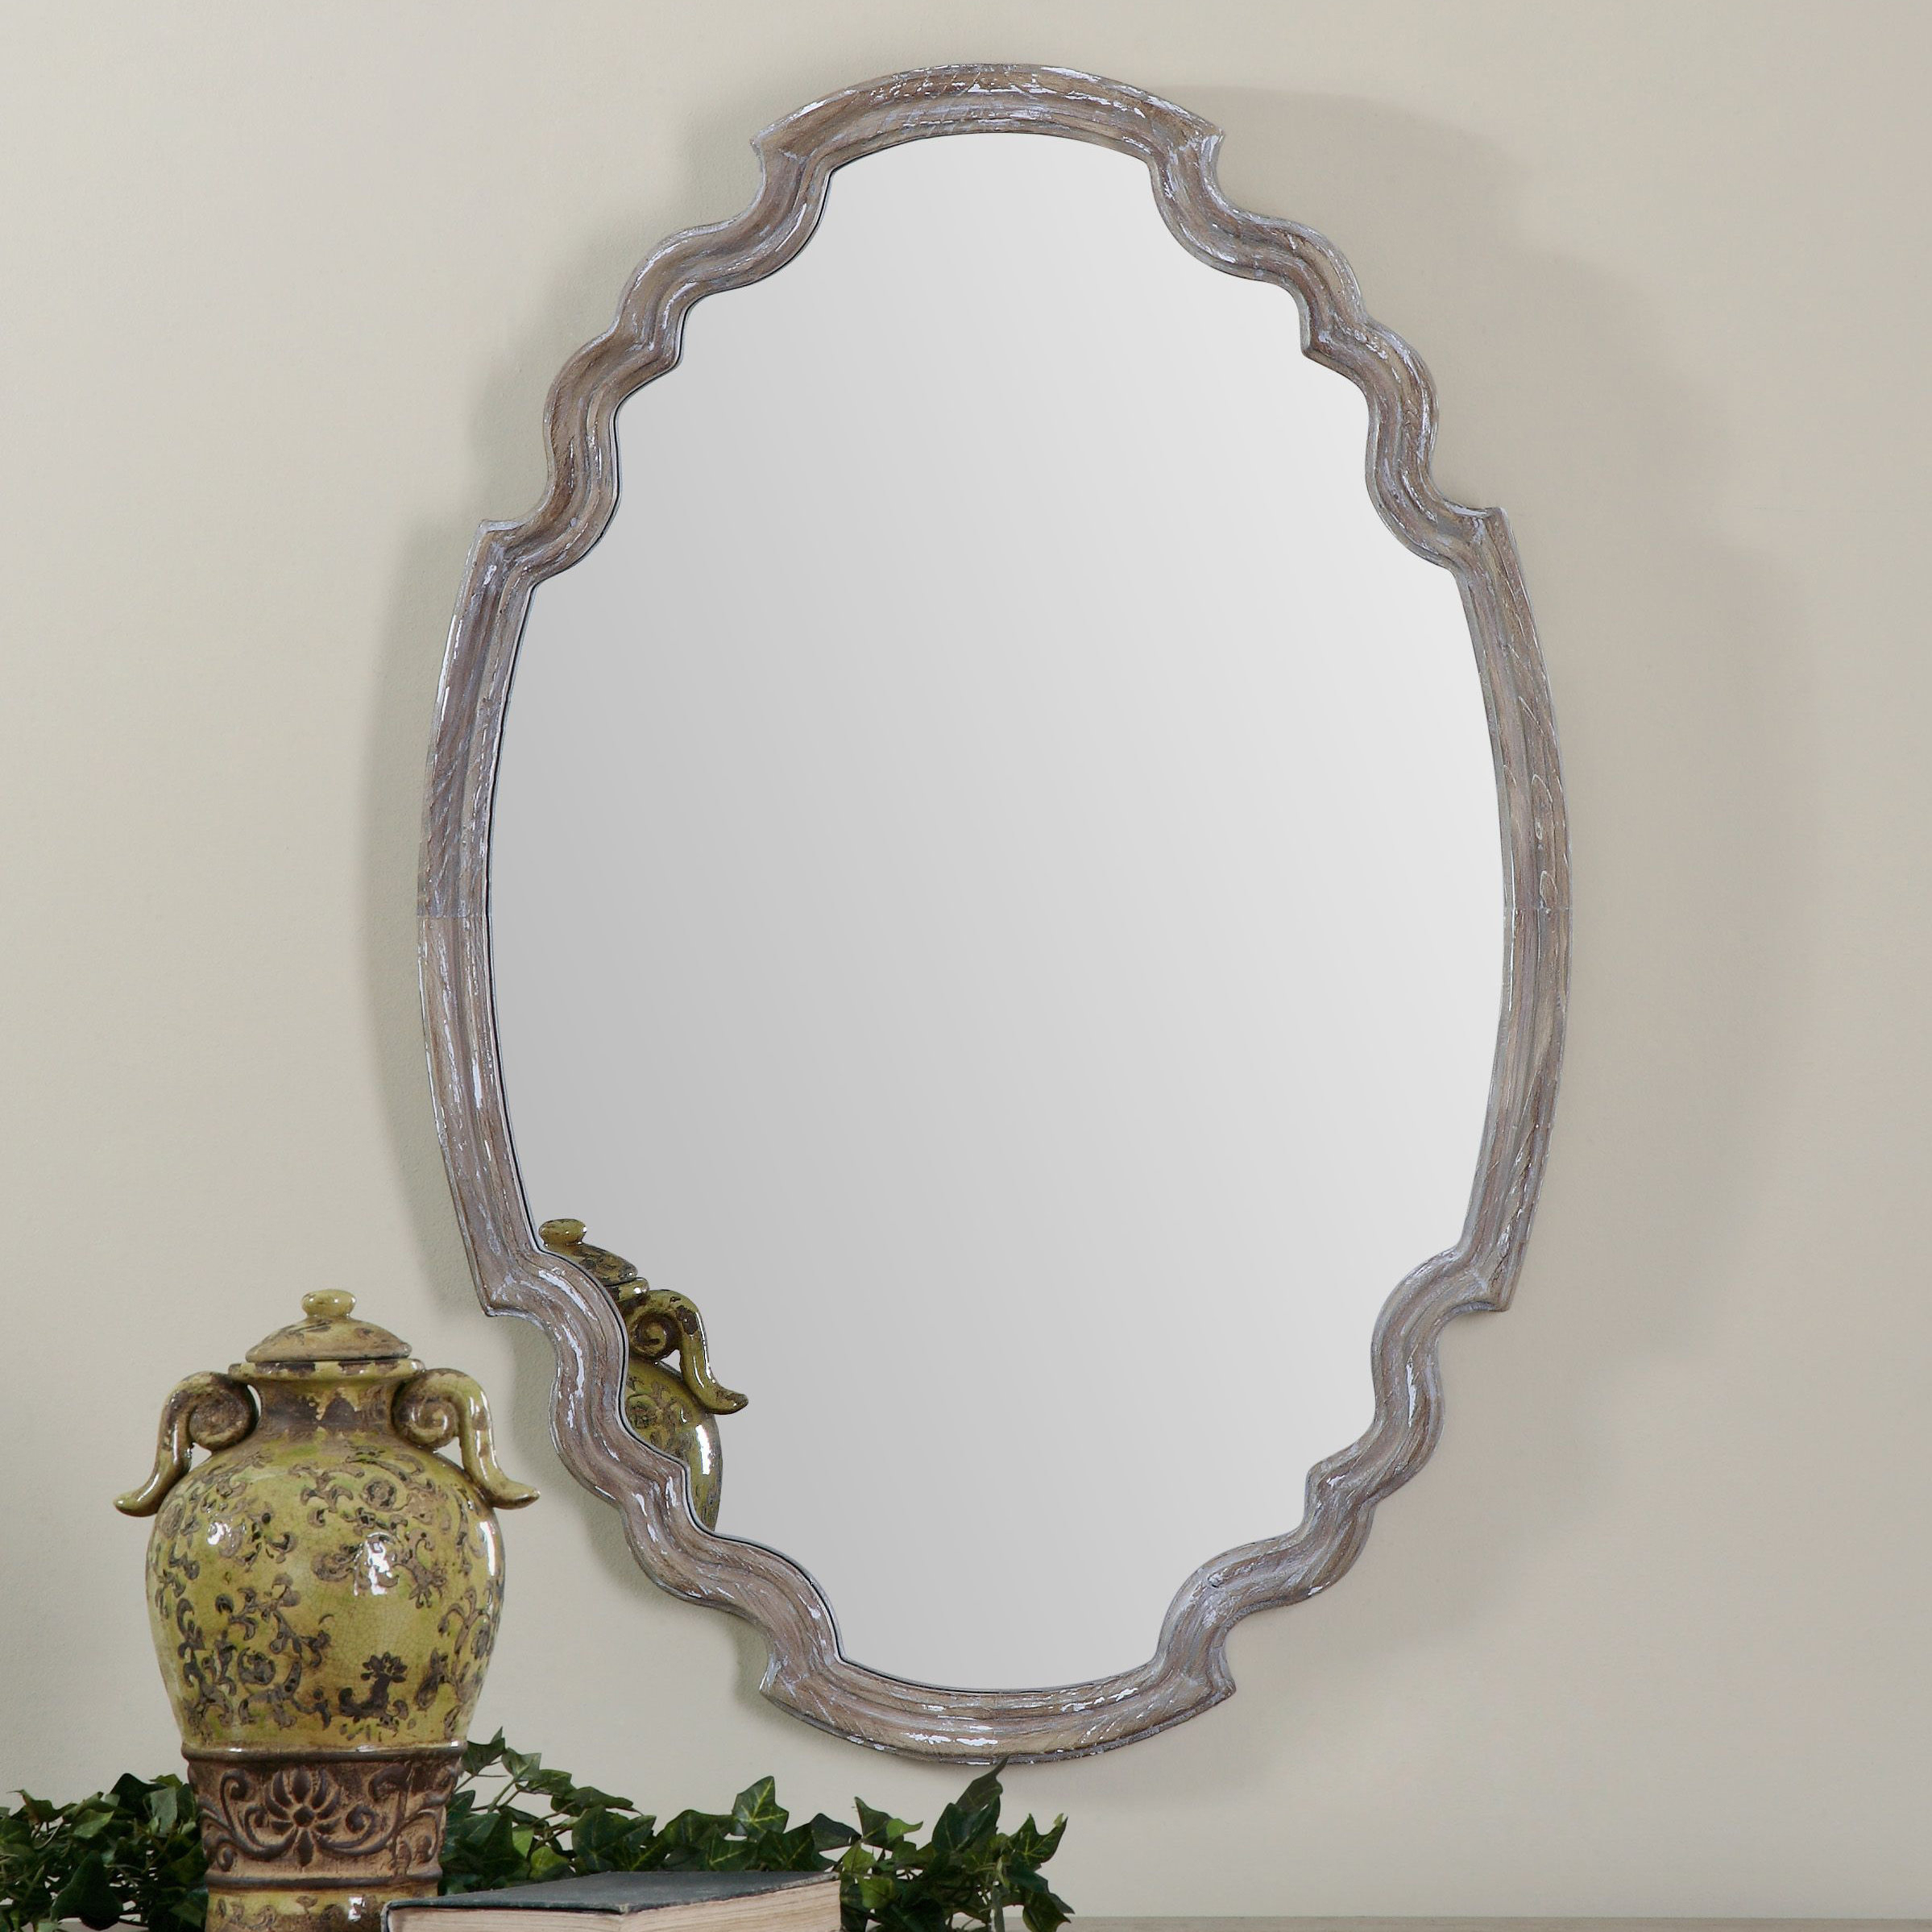 Framed Wall & Accent Mirrors   Allmodern With Regard To Rena Accent Mirrors (View 21 of 30)